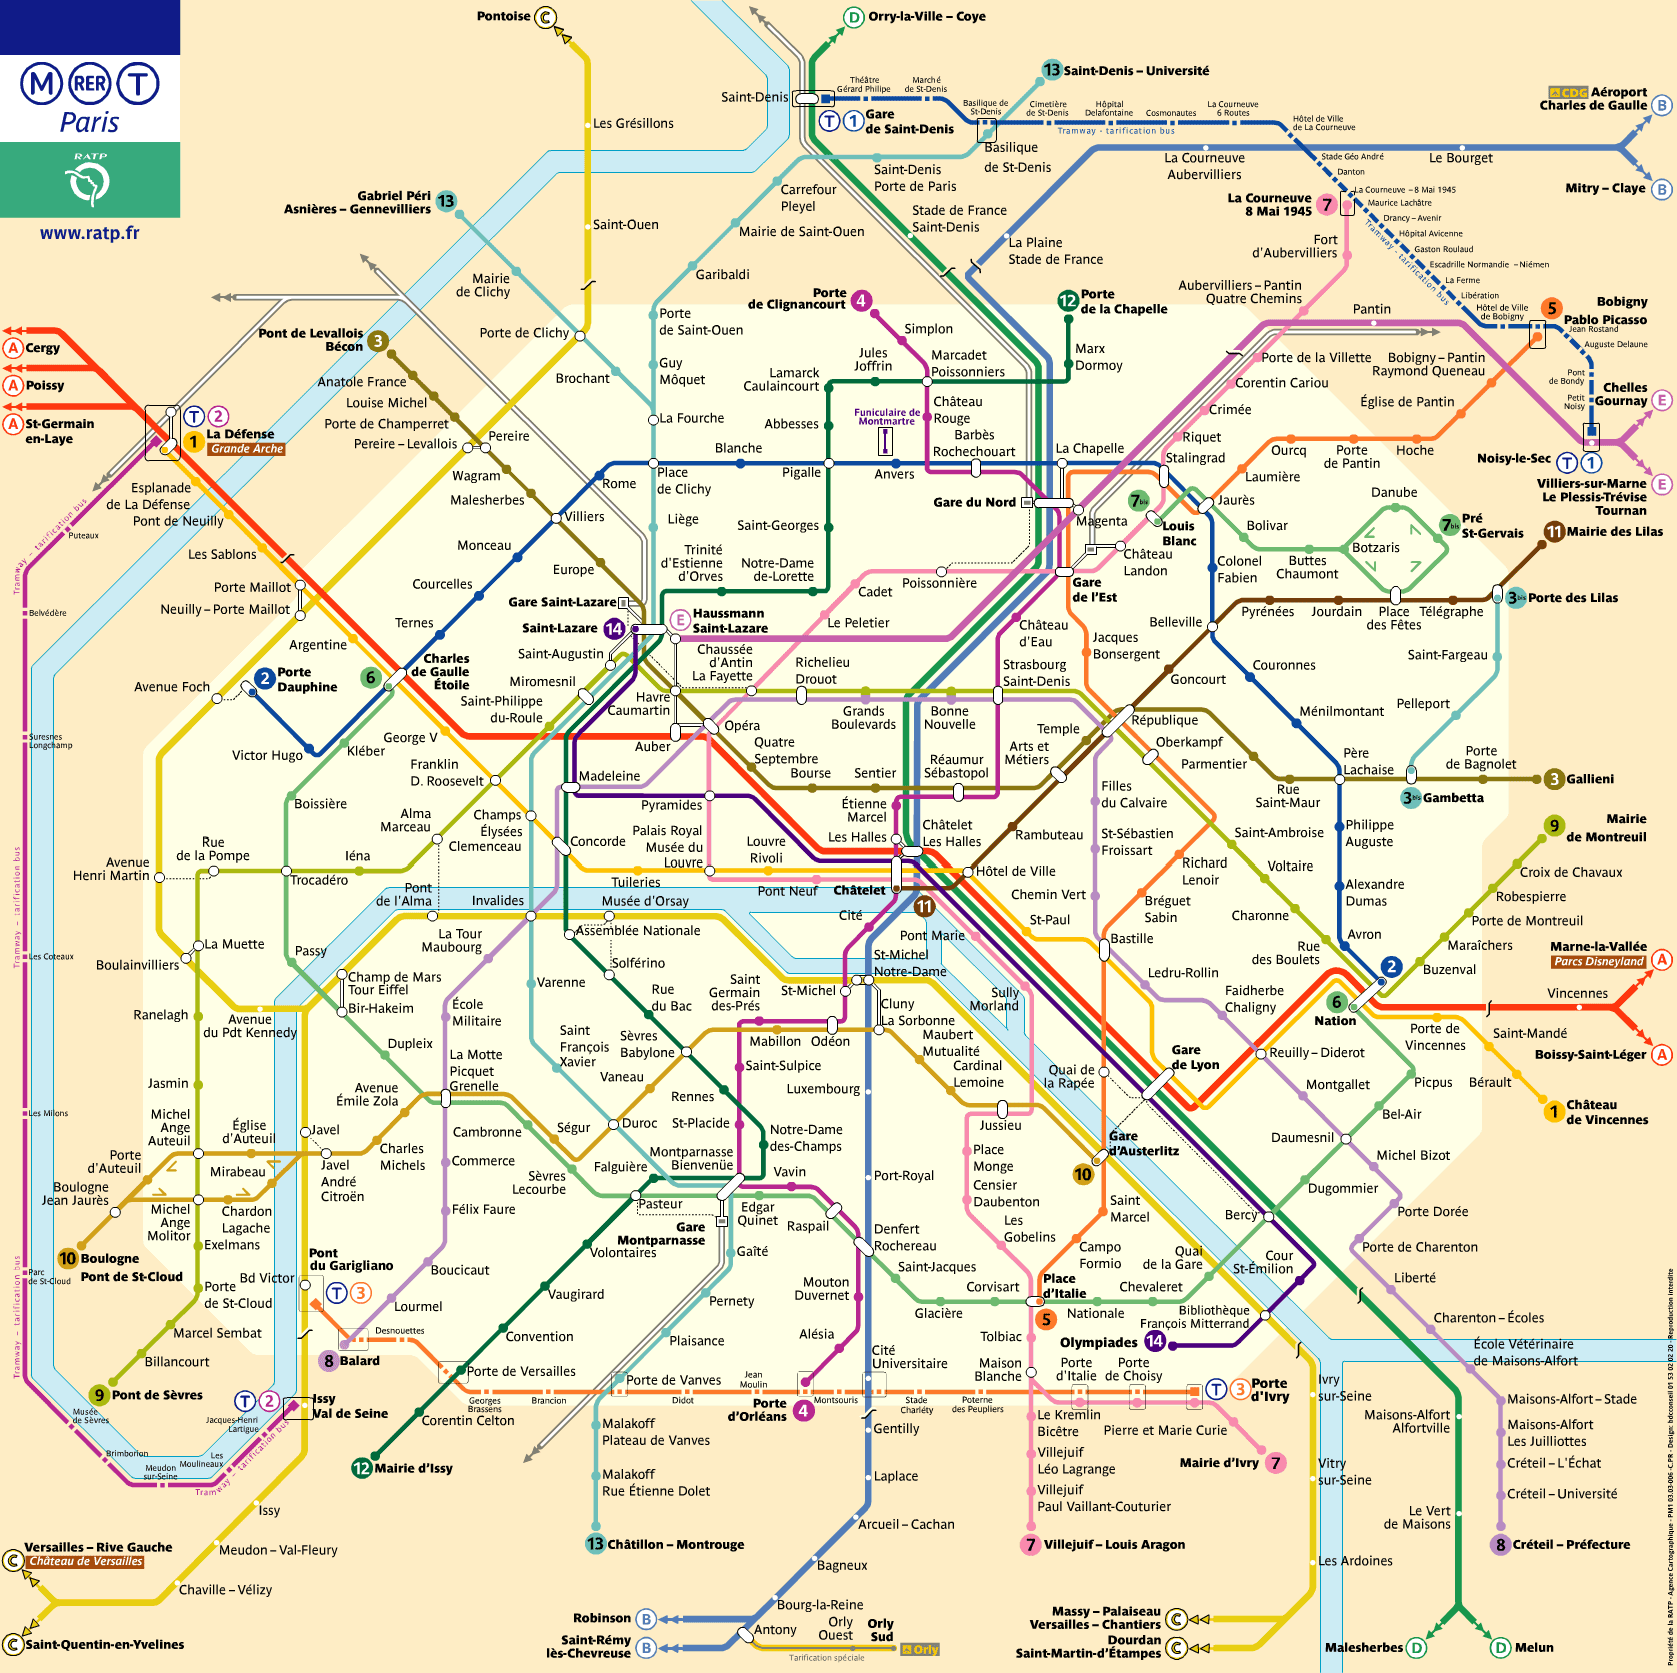 Subway Map Paris English.Paris Metro The Easiest And Fastest Way To Get Around Paris